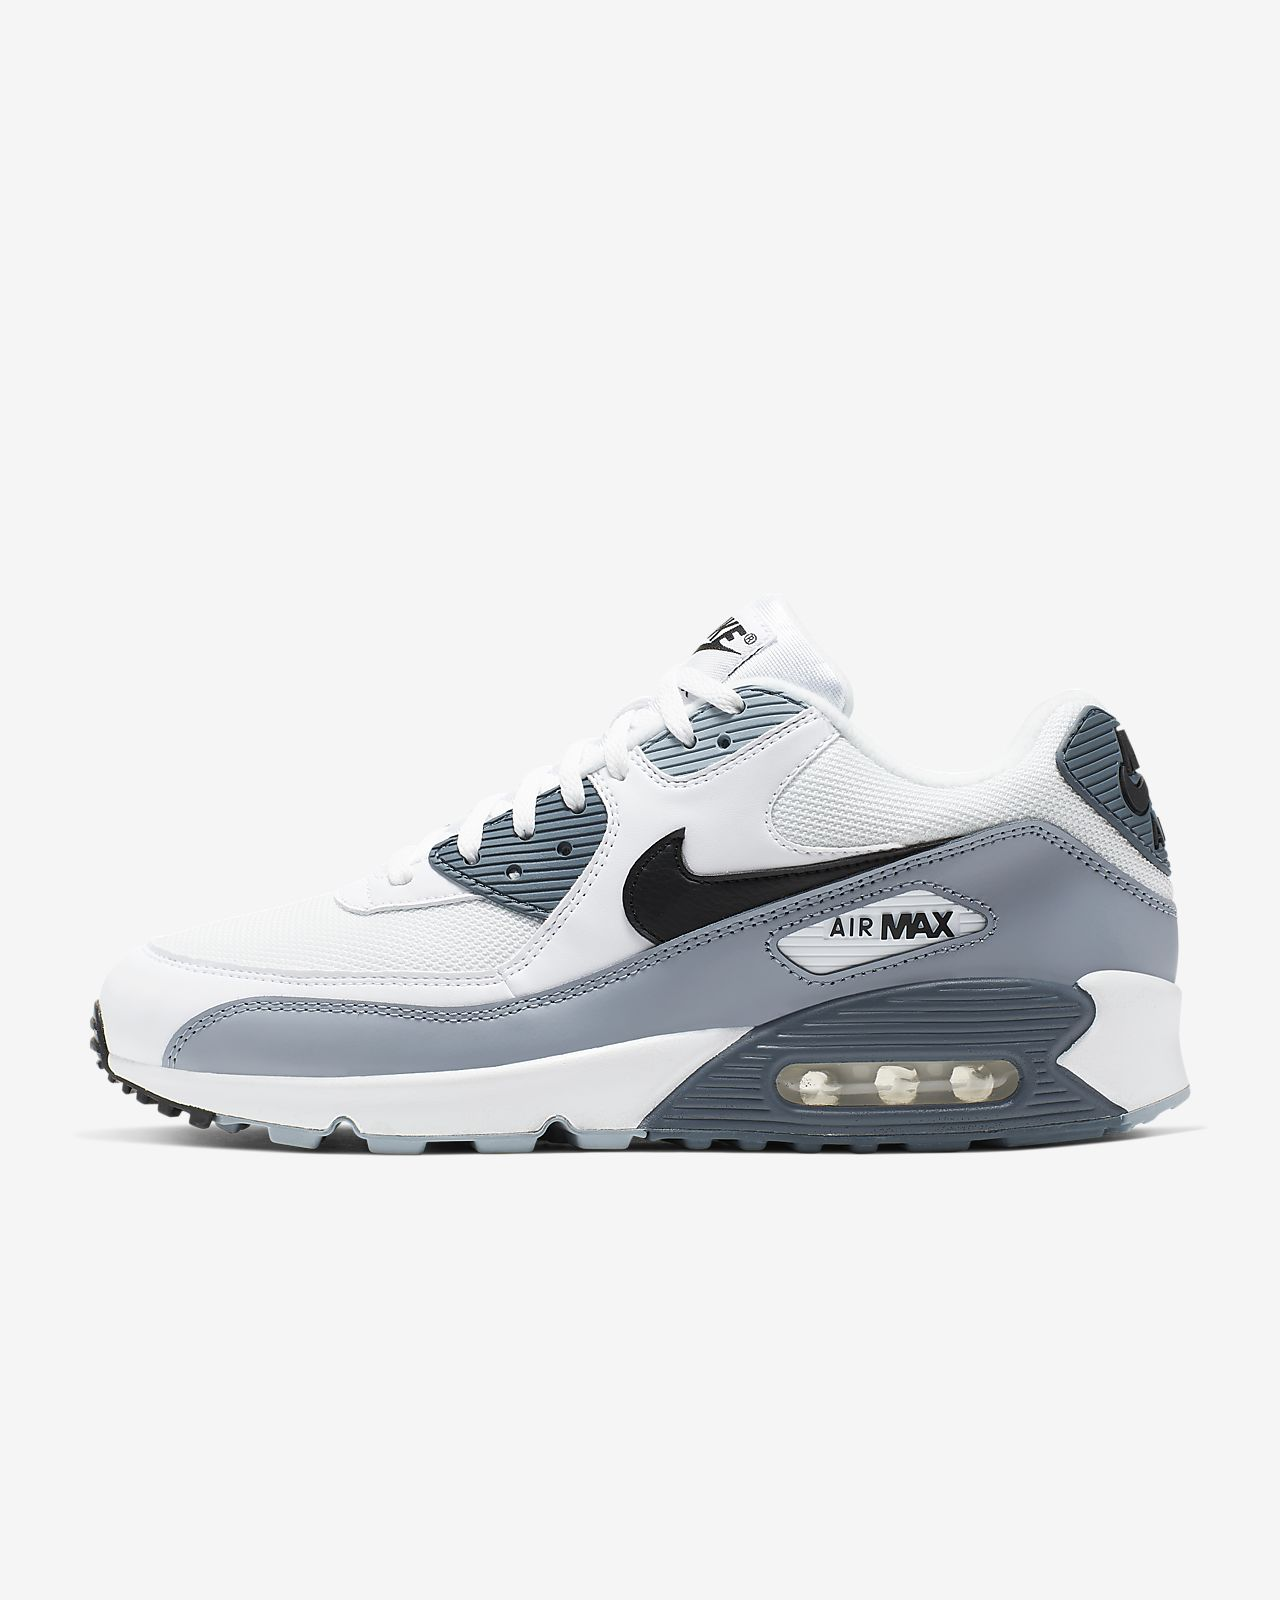 reputable site 34ad1 83315 Nike Air Max 90 Essential